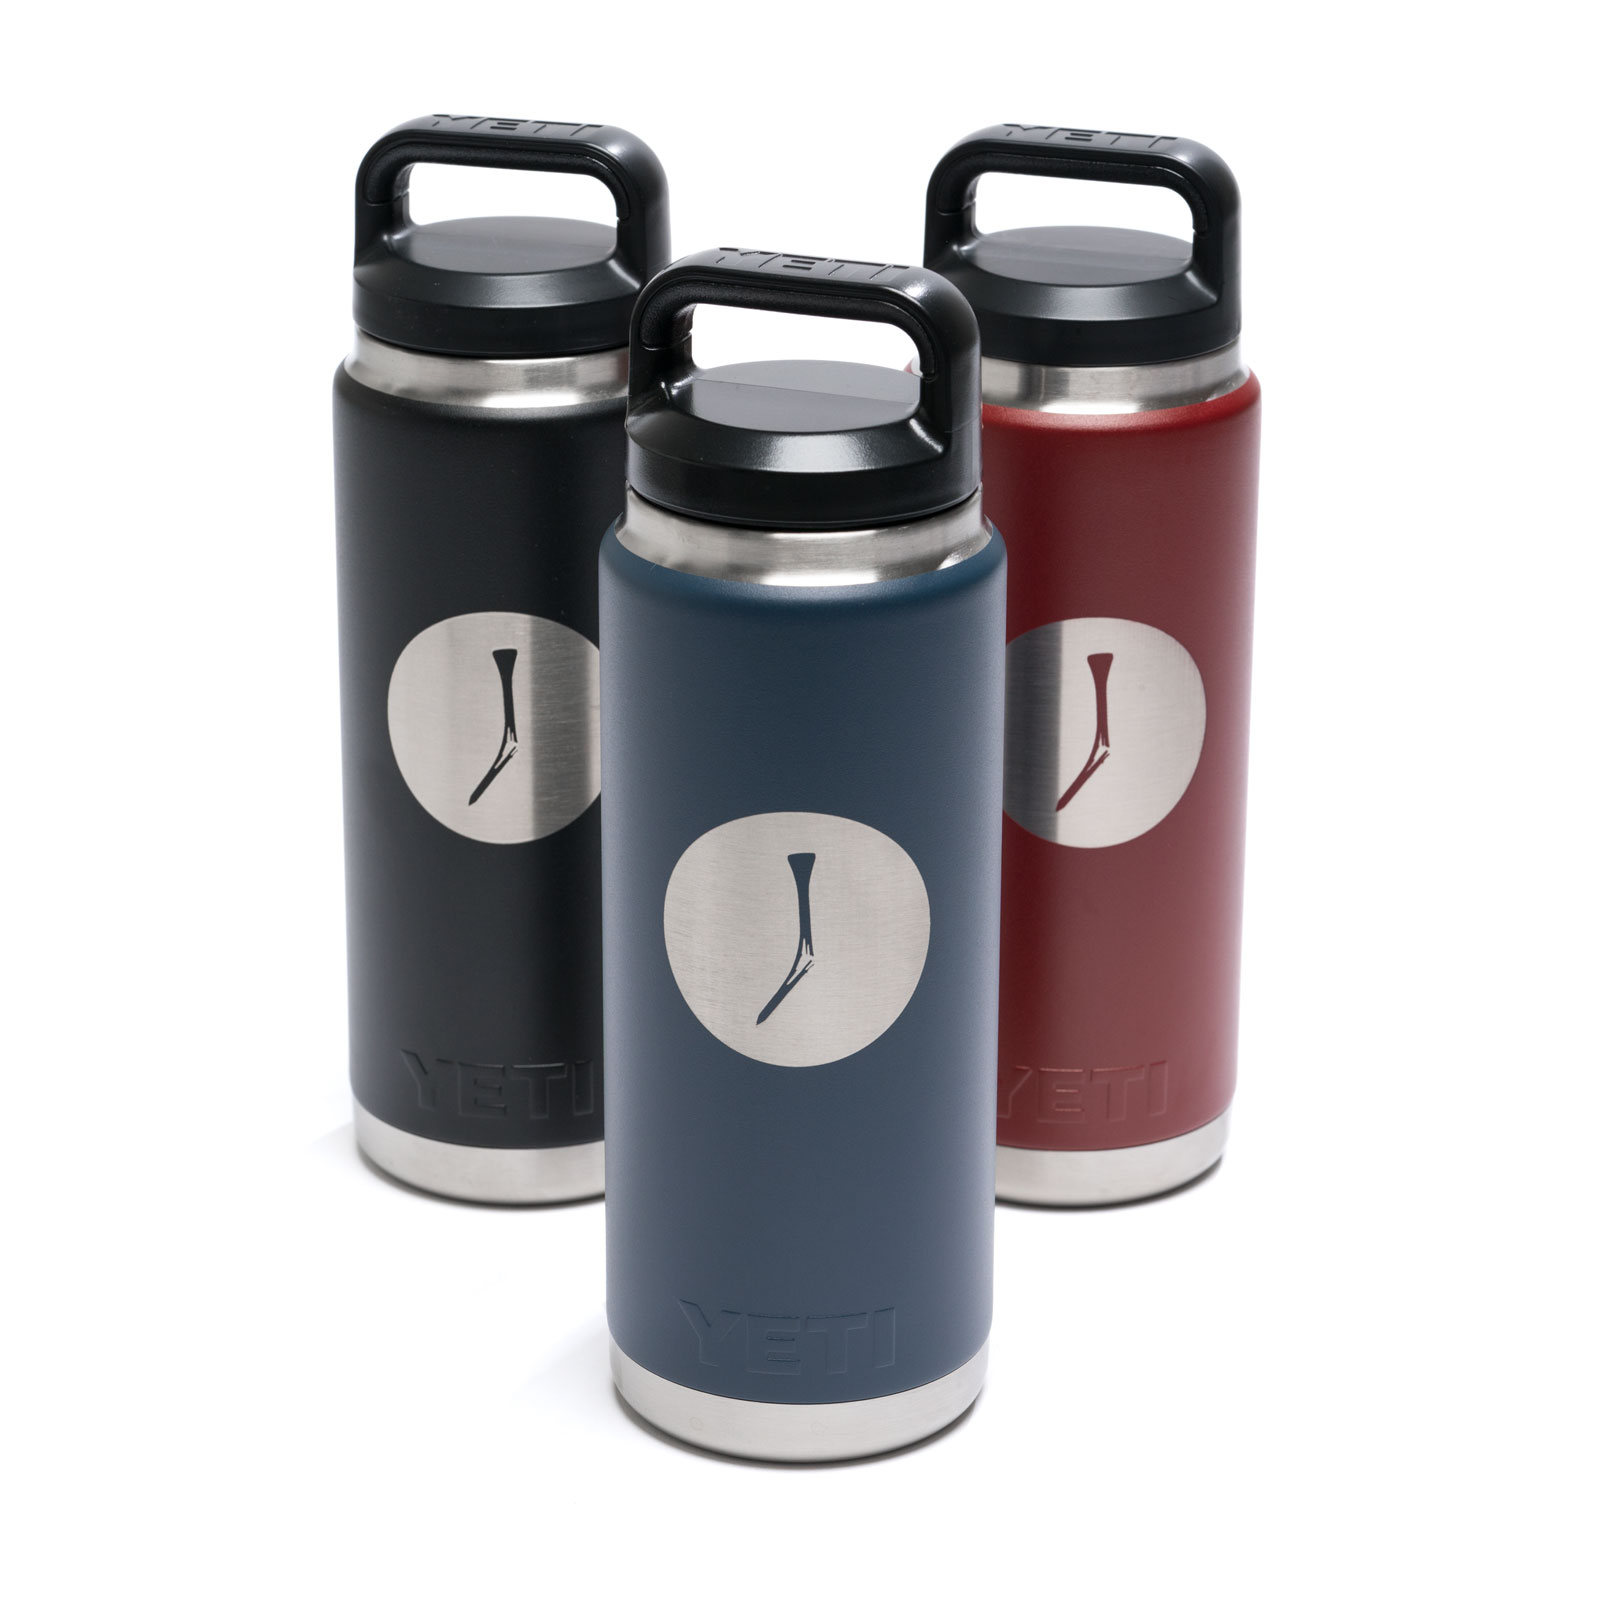 TGJ x Yeti Rambler Bottle